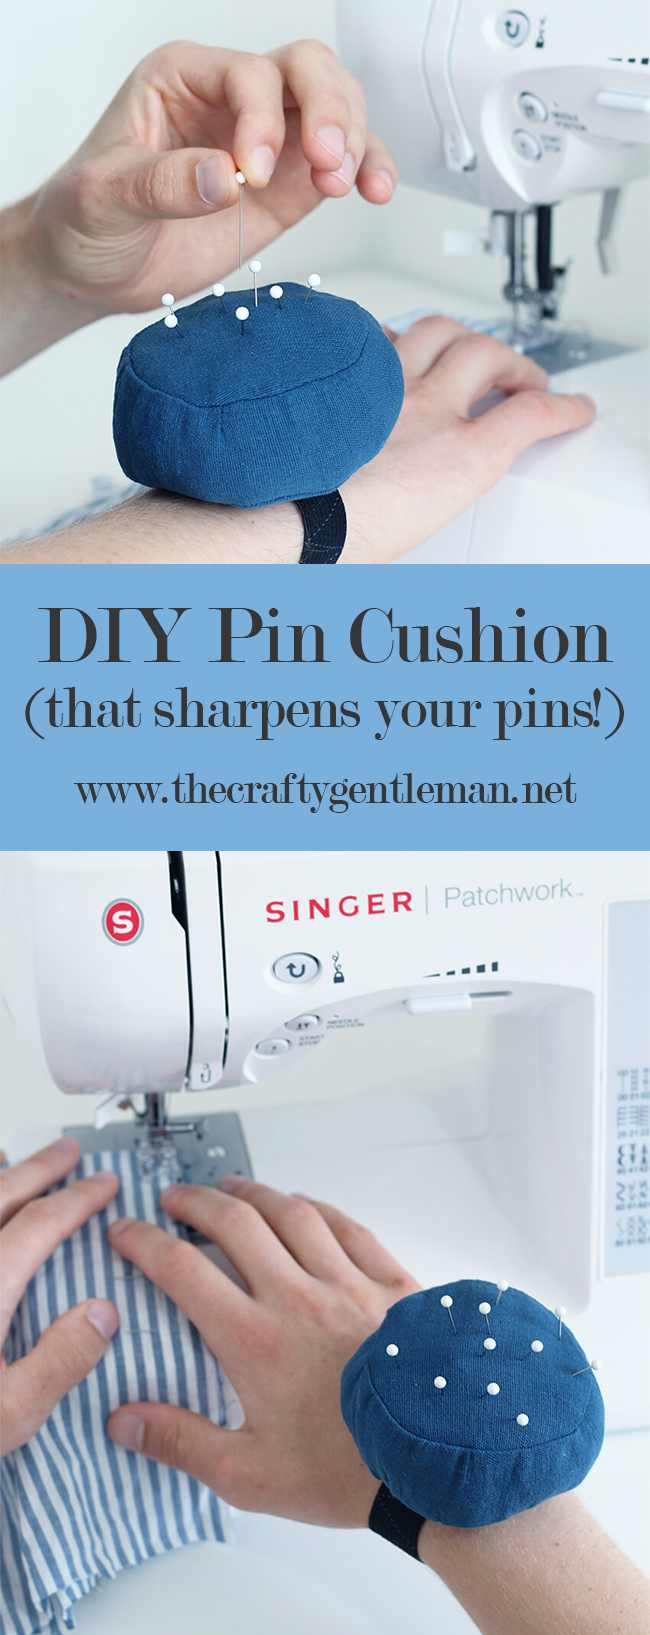 Sew a DIY wrist pincushion that sharpens your needles with wire wool, as you use it | Click through for full tutorial | #crafts #sewing #tutorial #diy #pincushion